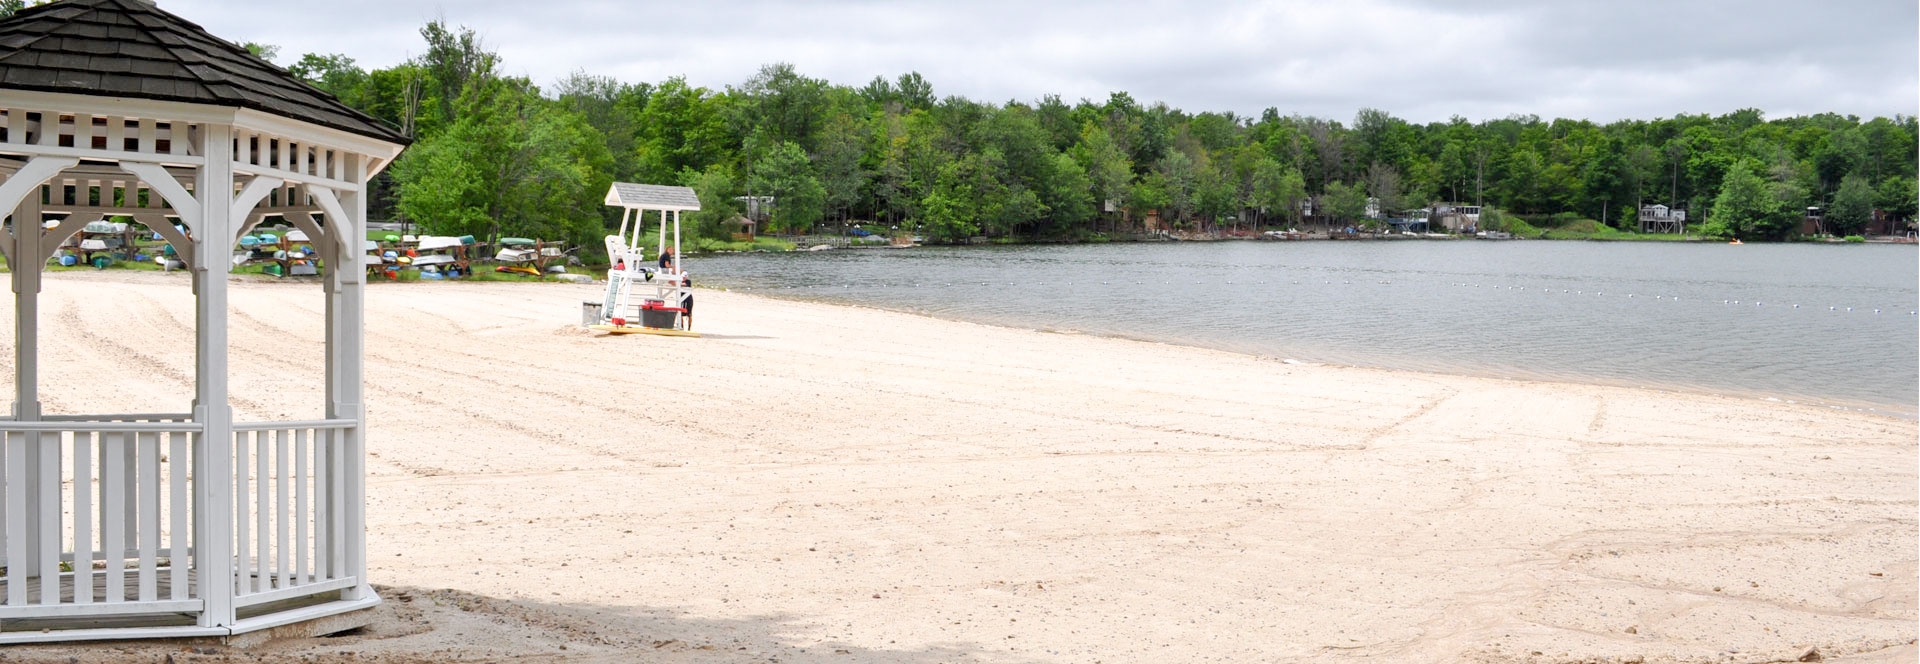 eagle-lake-beach-2